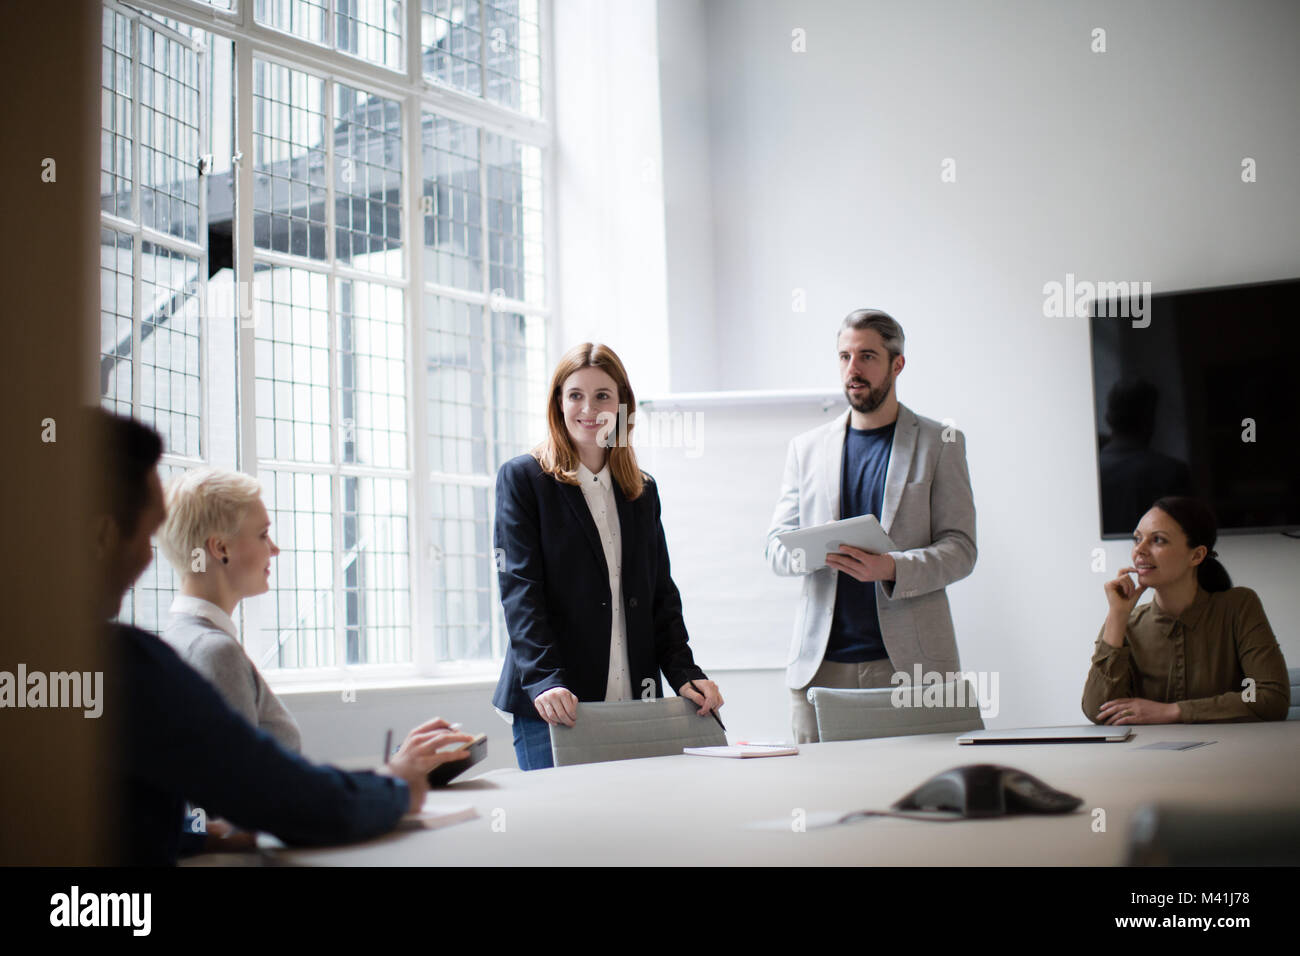 Business executives leading a brainstorm meeting - Stock Image